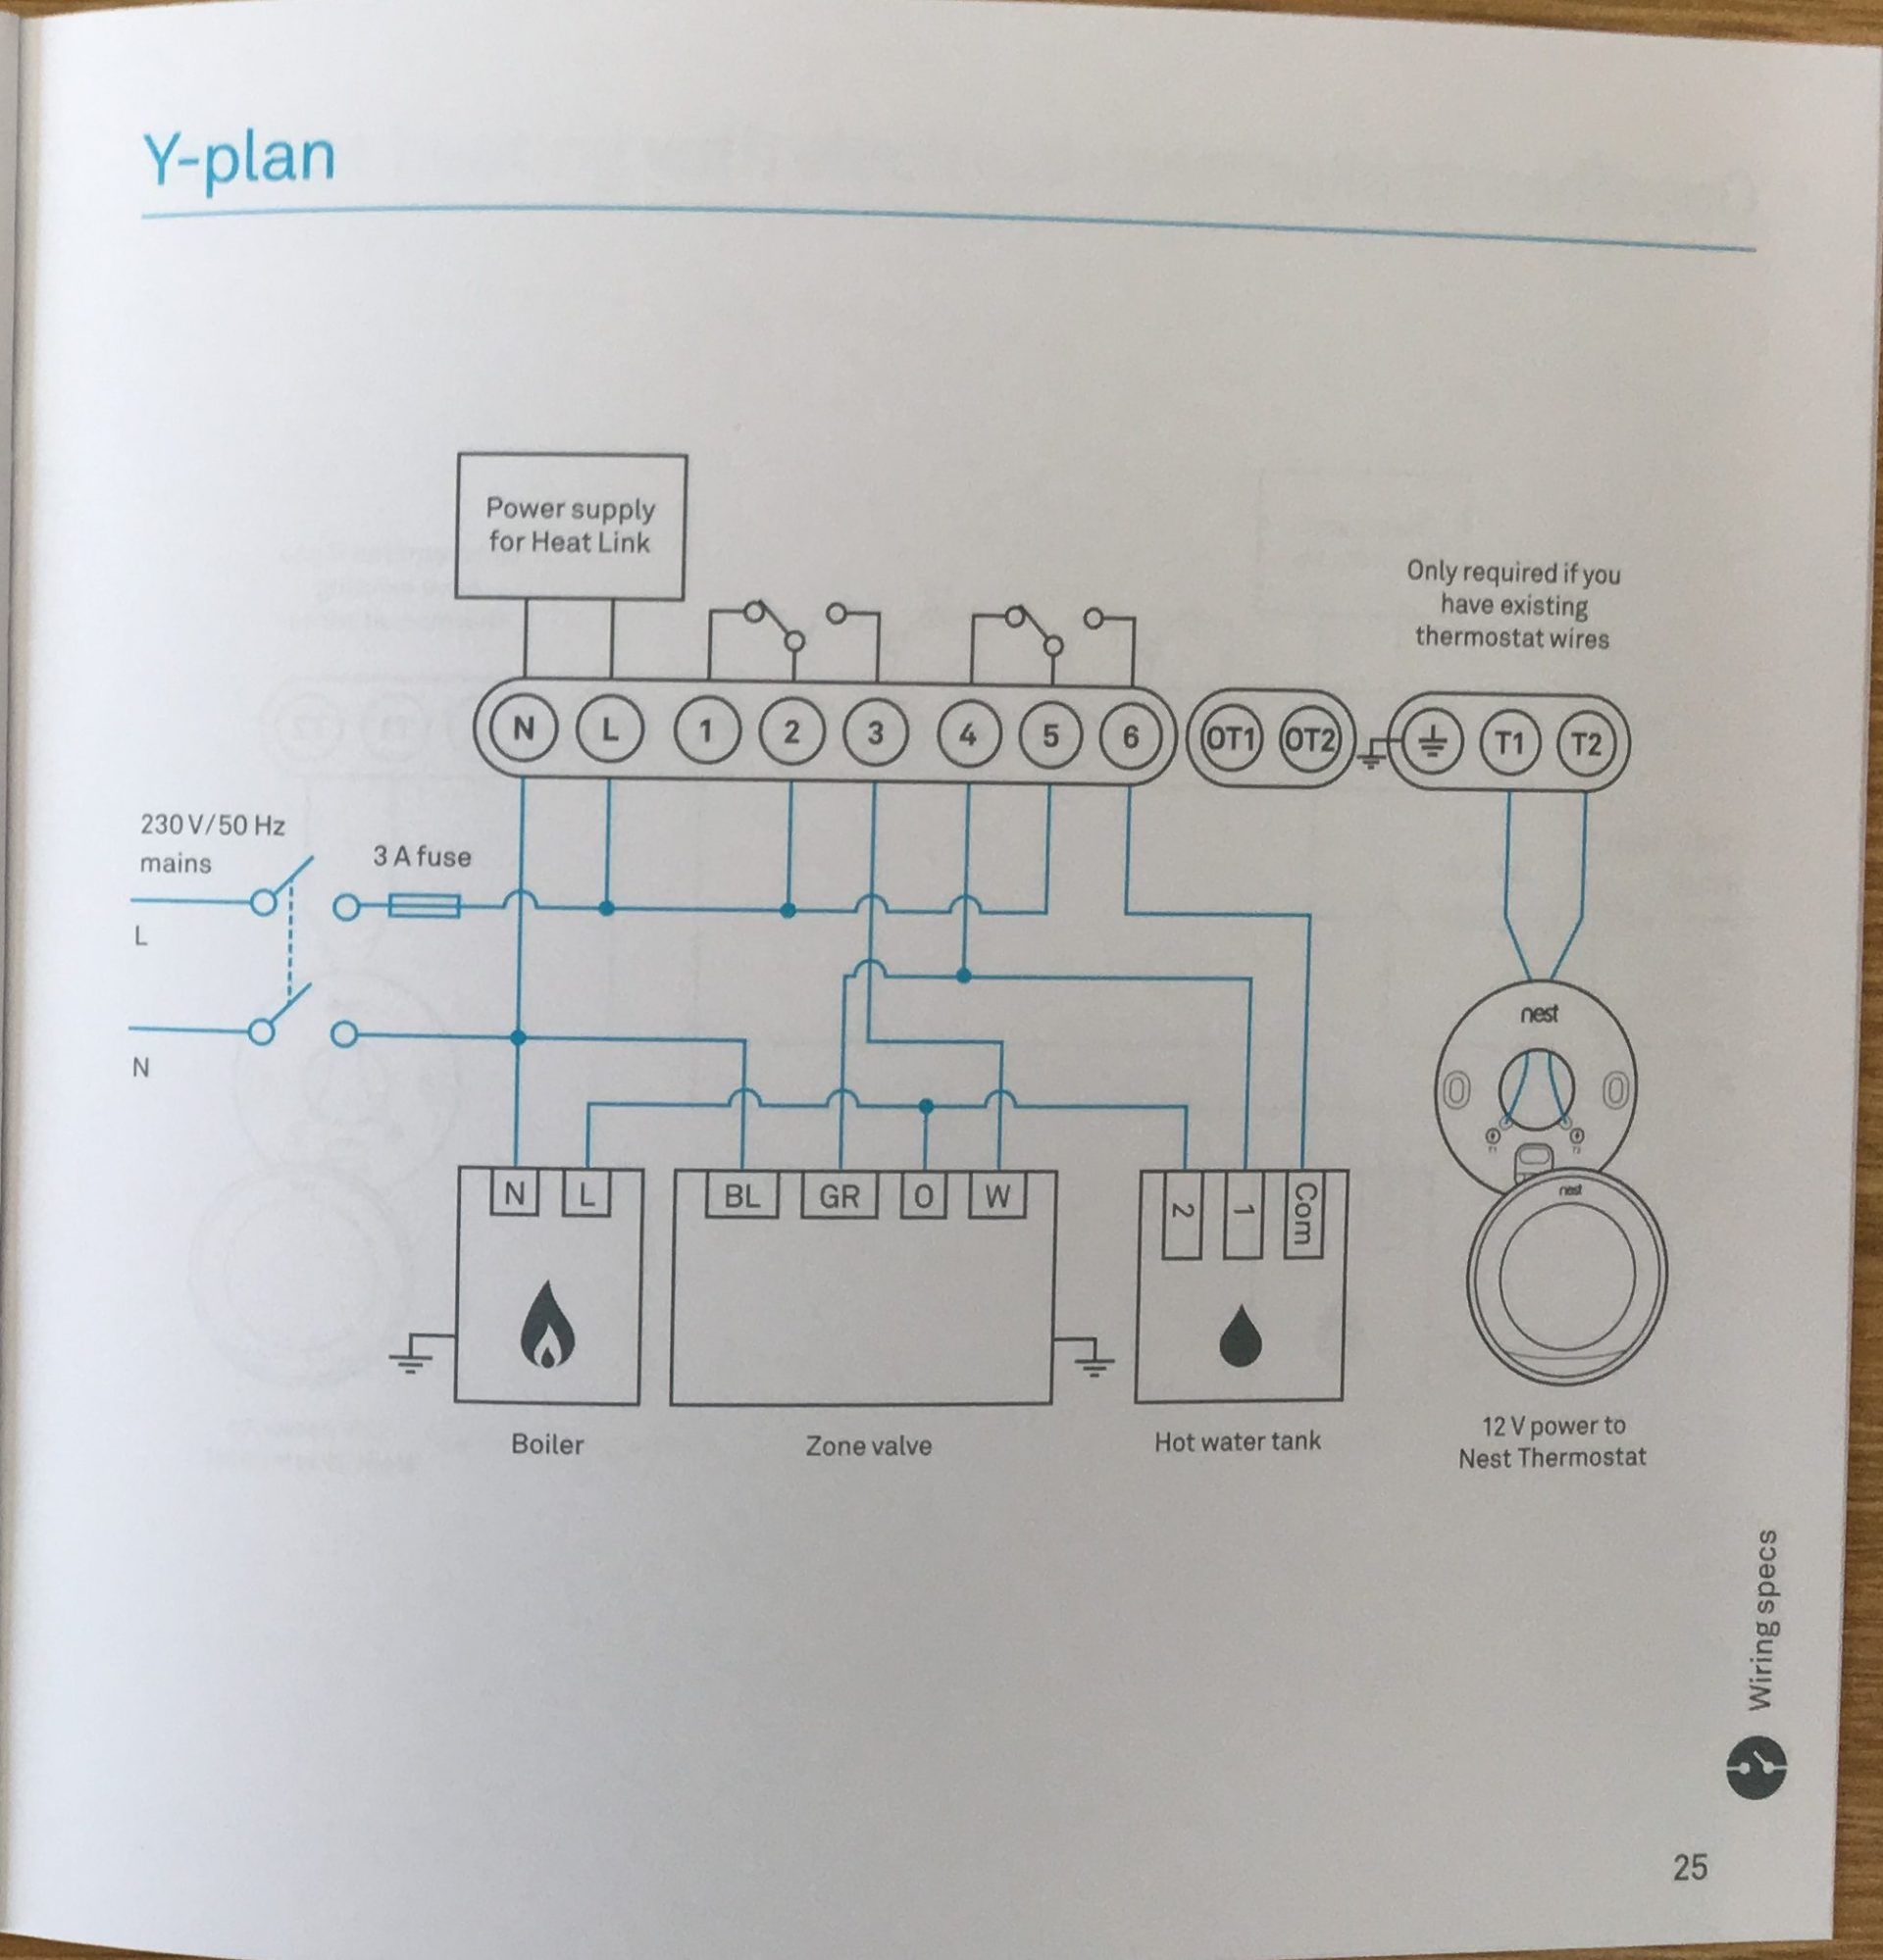 How To Install The Nest Learning Thermostat (3Rd Gen) In A Y-Plan - Nest Base Wiring Diagram